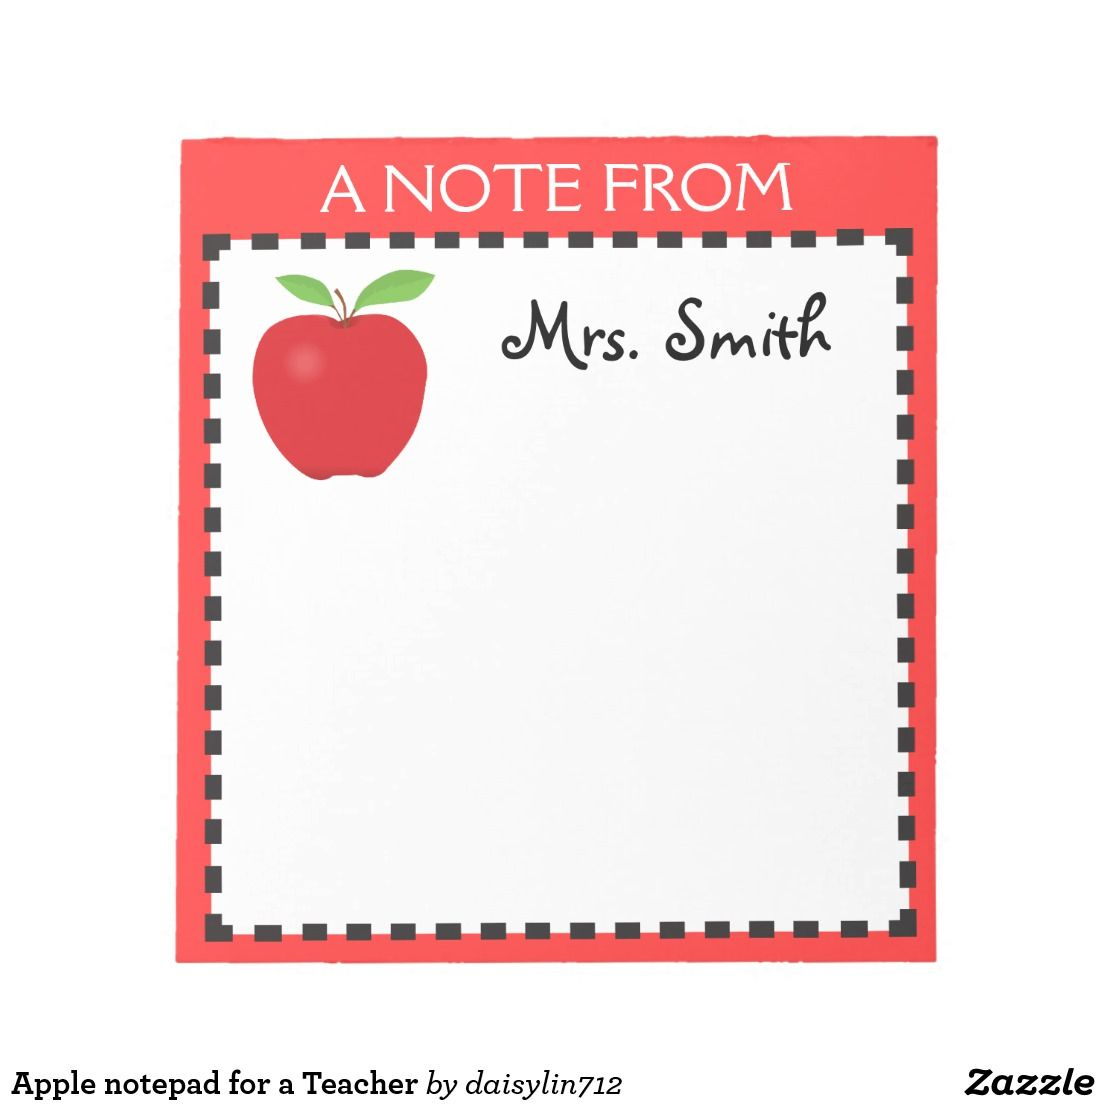 Apple notepad for a Teacher Note pad